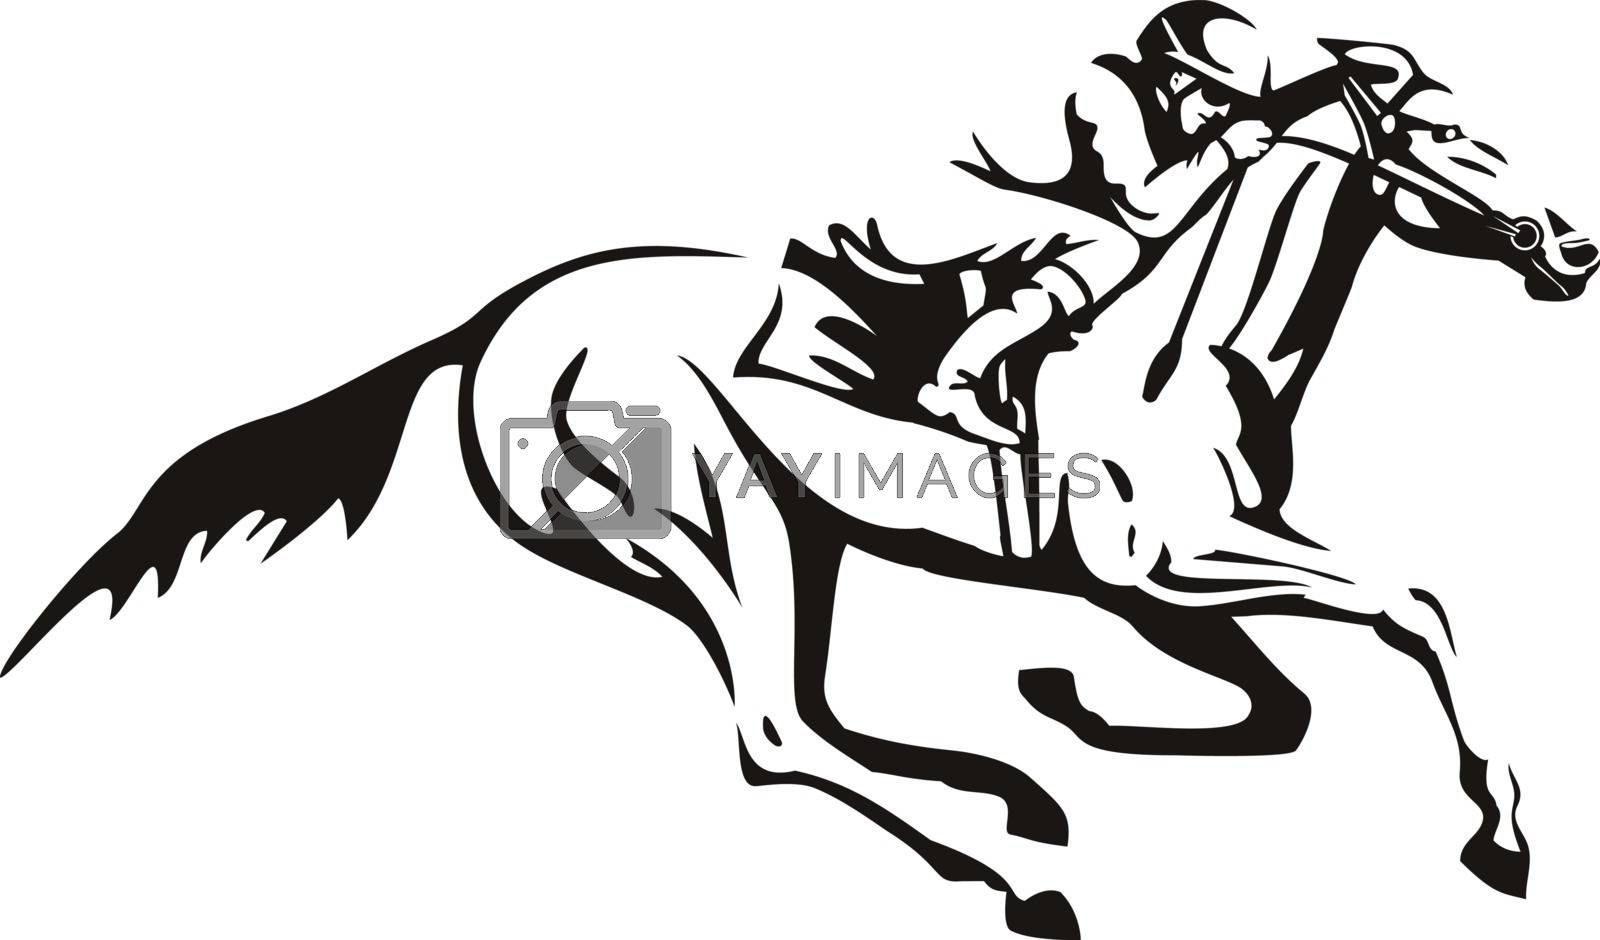 Retro style illustration of a jockey riding horse horseback or horse racing viewed from side on isolated background in black and white.